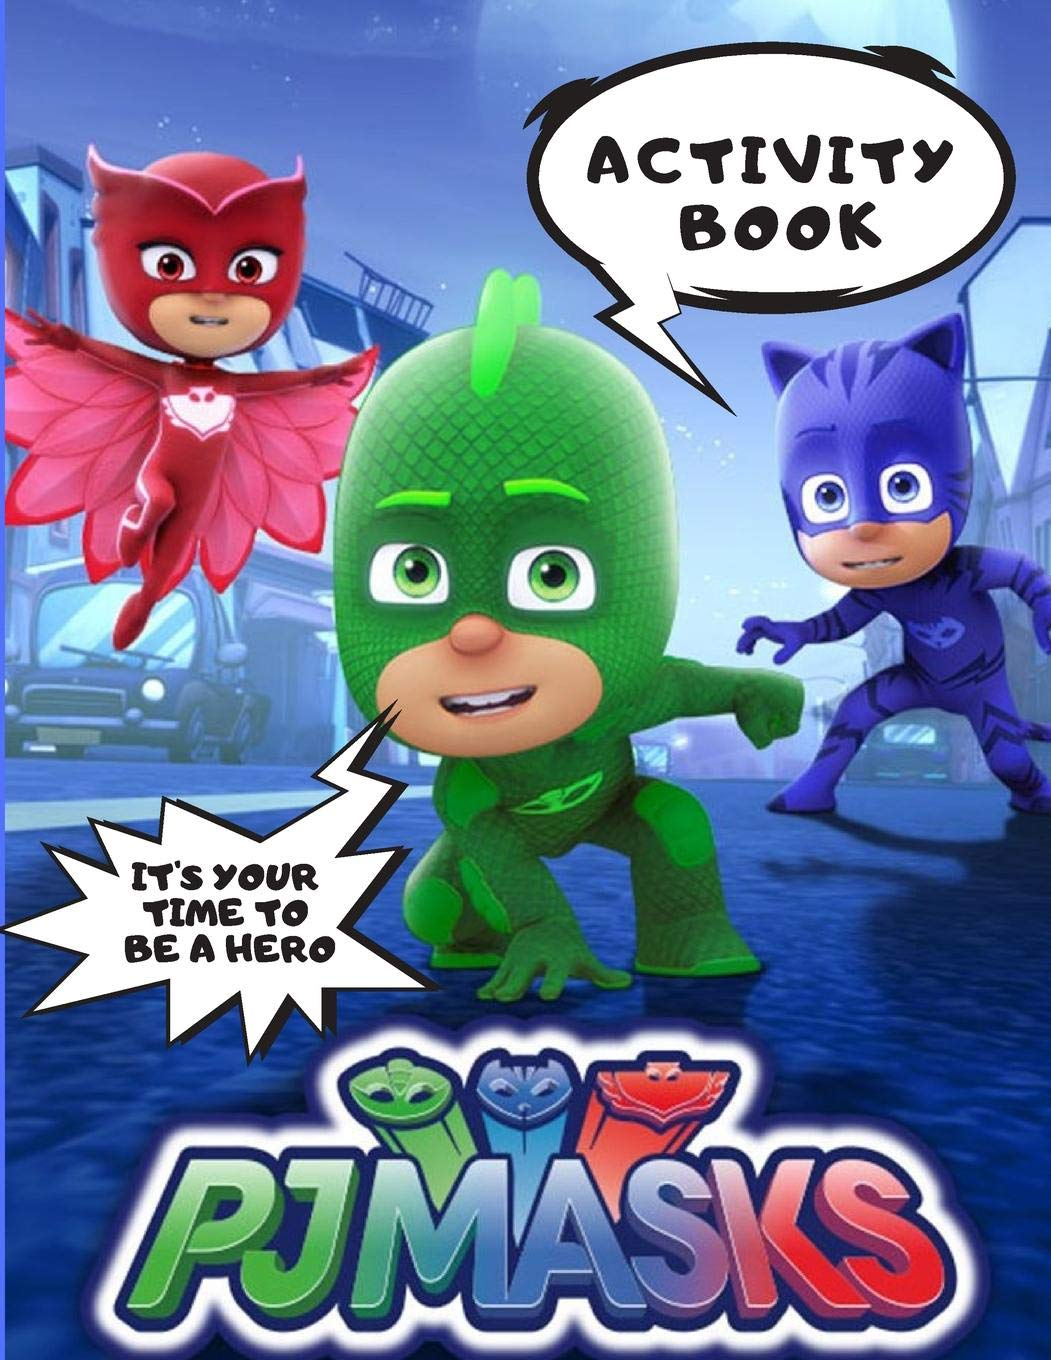 PJ MASKS Activity Book: Its Your Time To Be a Hero ...